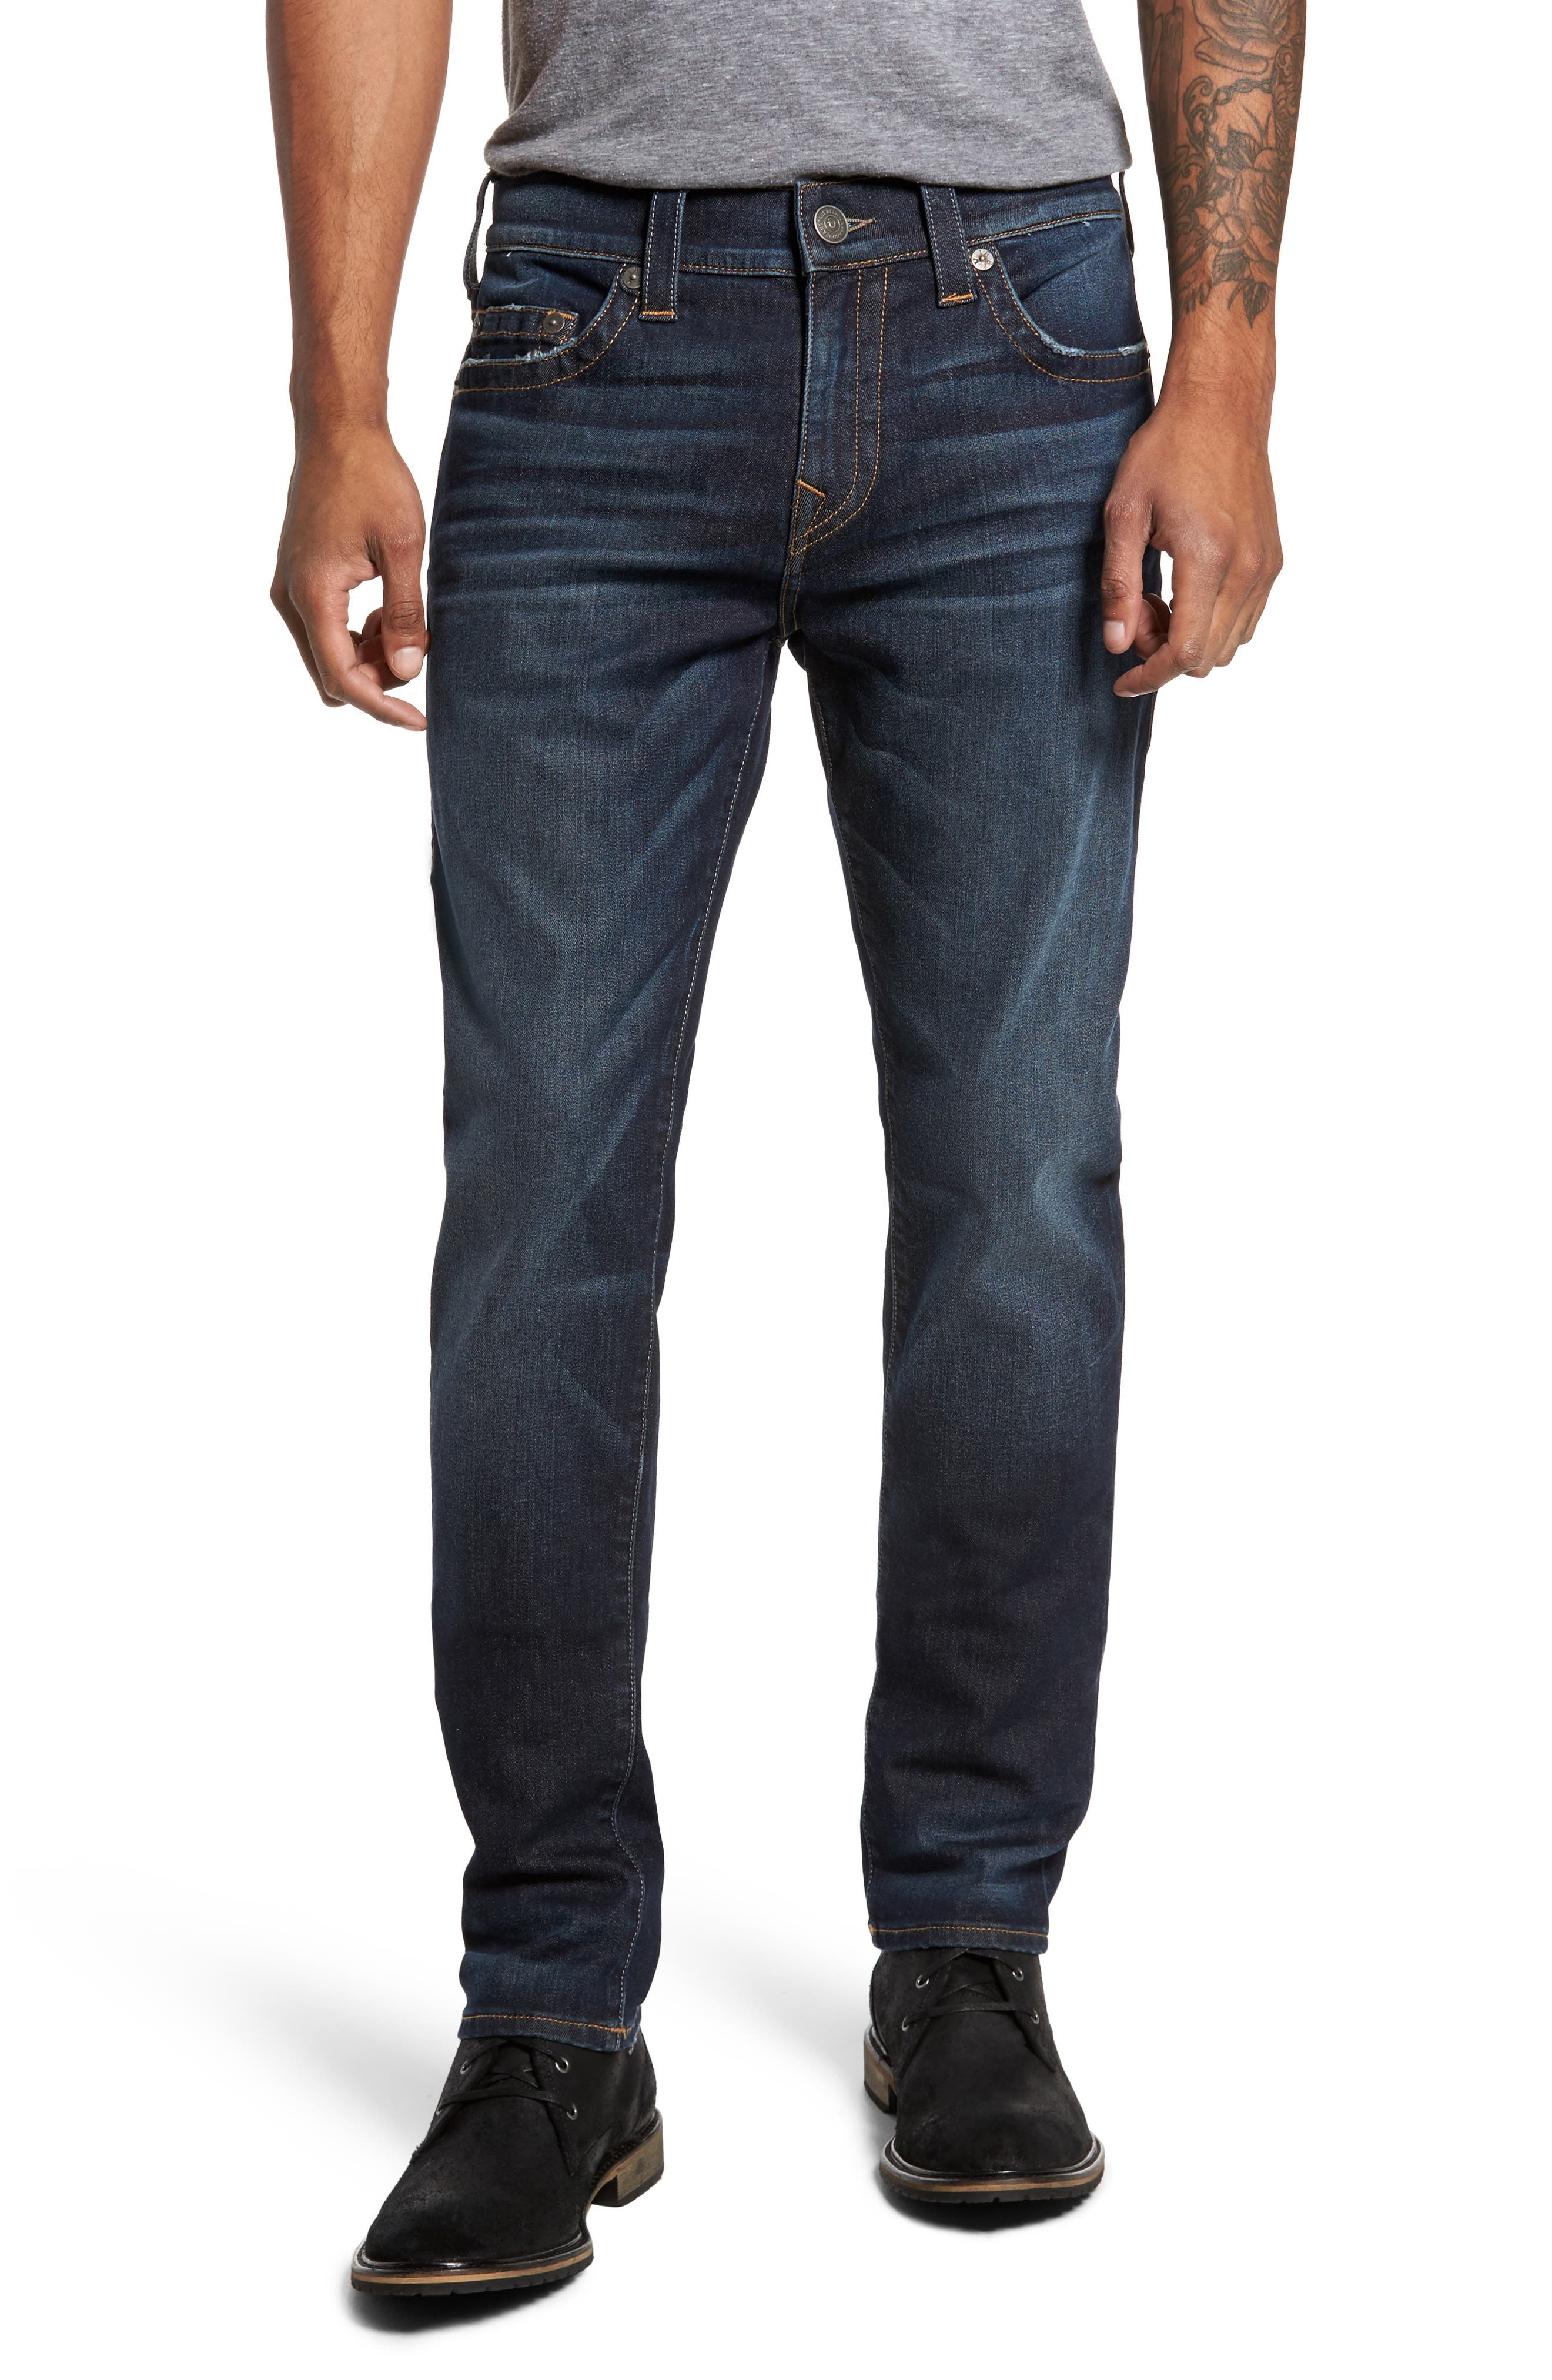 Rocco Skinny Fit Jeans,                             Main thumbnail 1, color,                             Dark Indigo Luxe